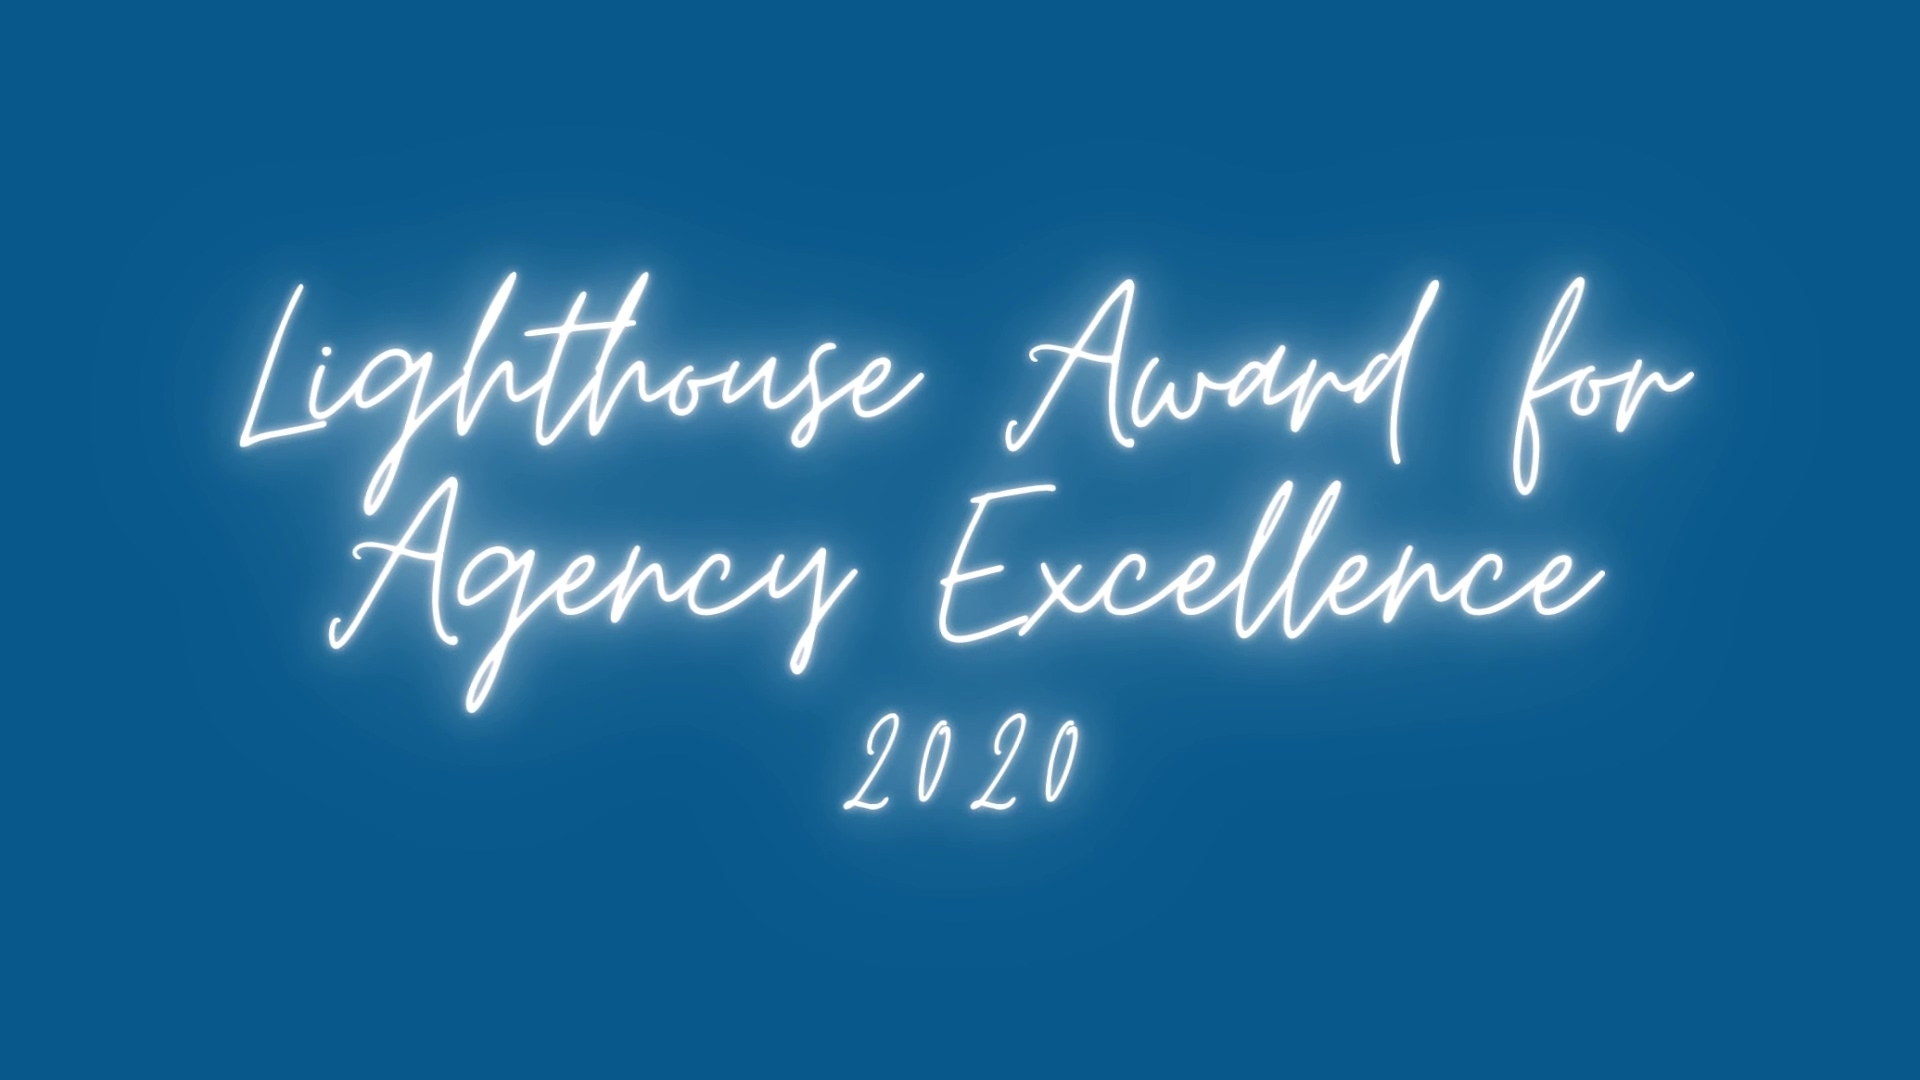 2020 Lighthouse Award for Agency Excellence